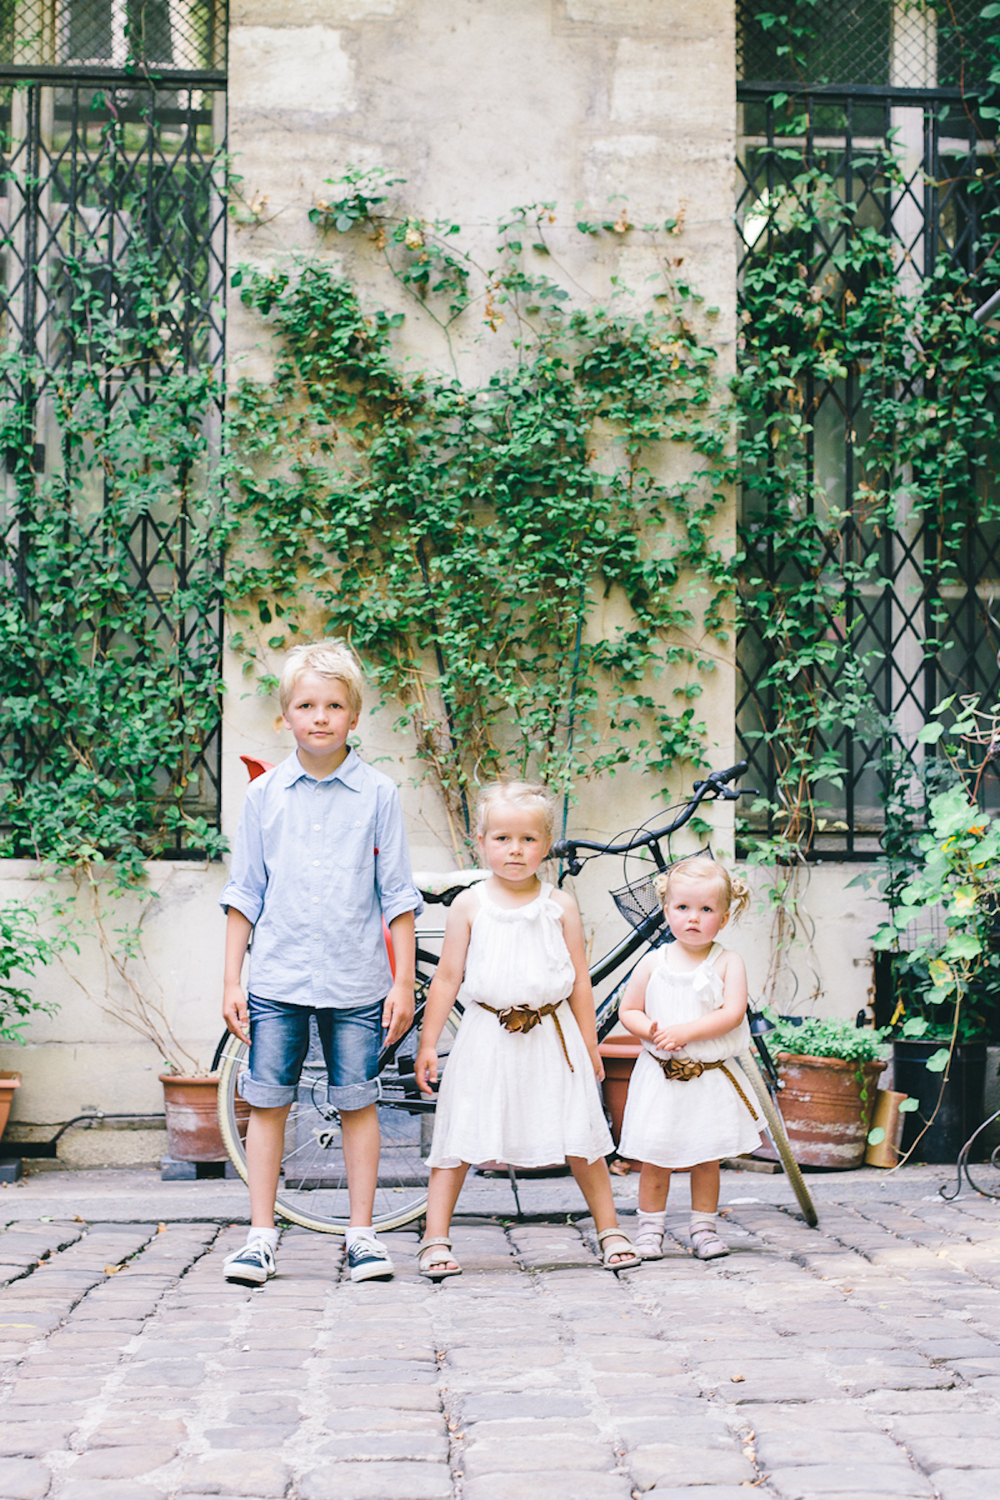 flytographer-family-paris-vacation